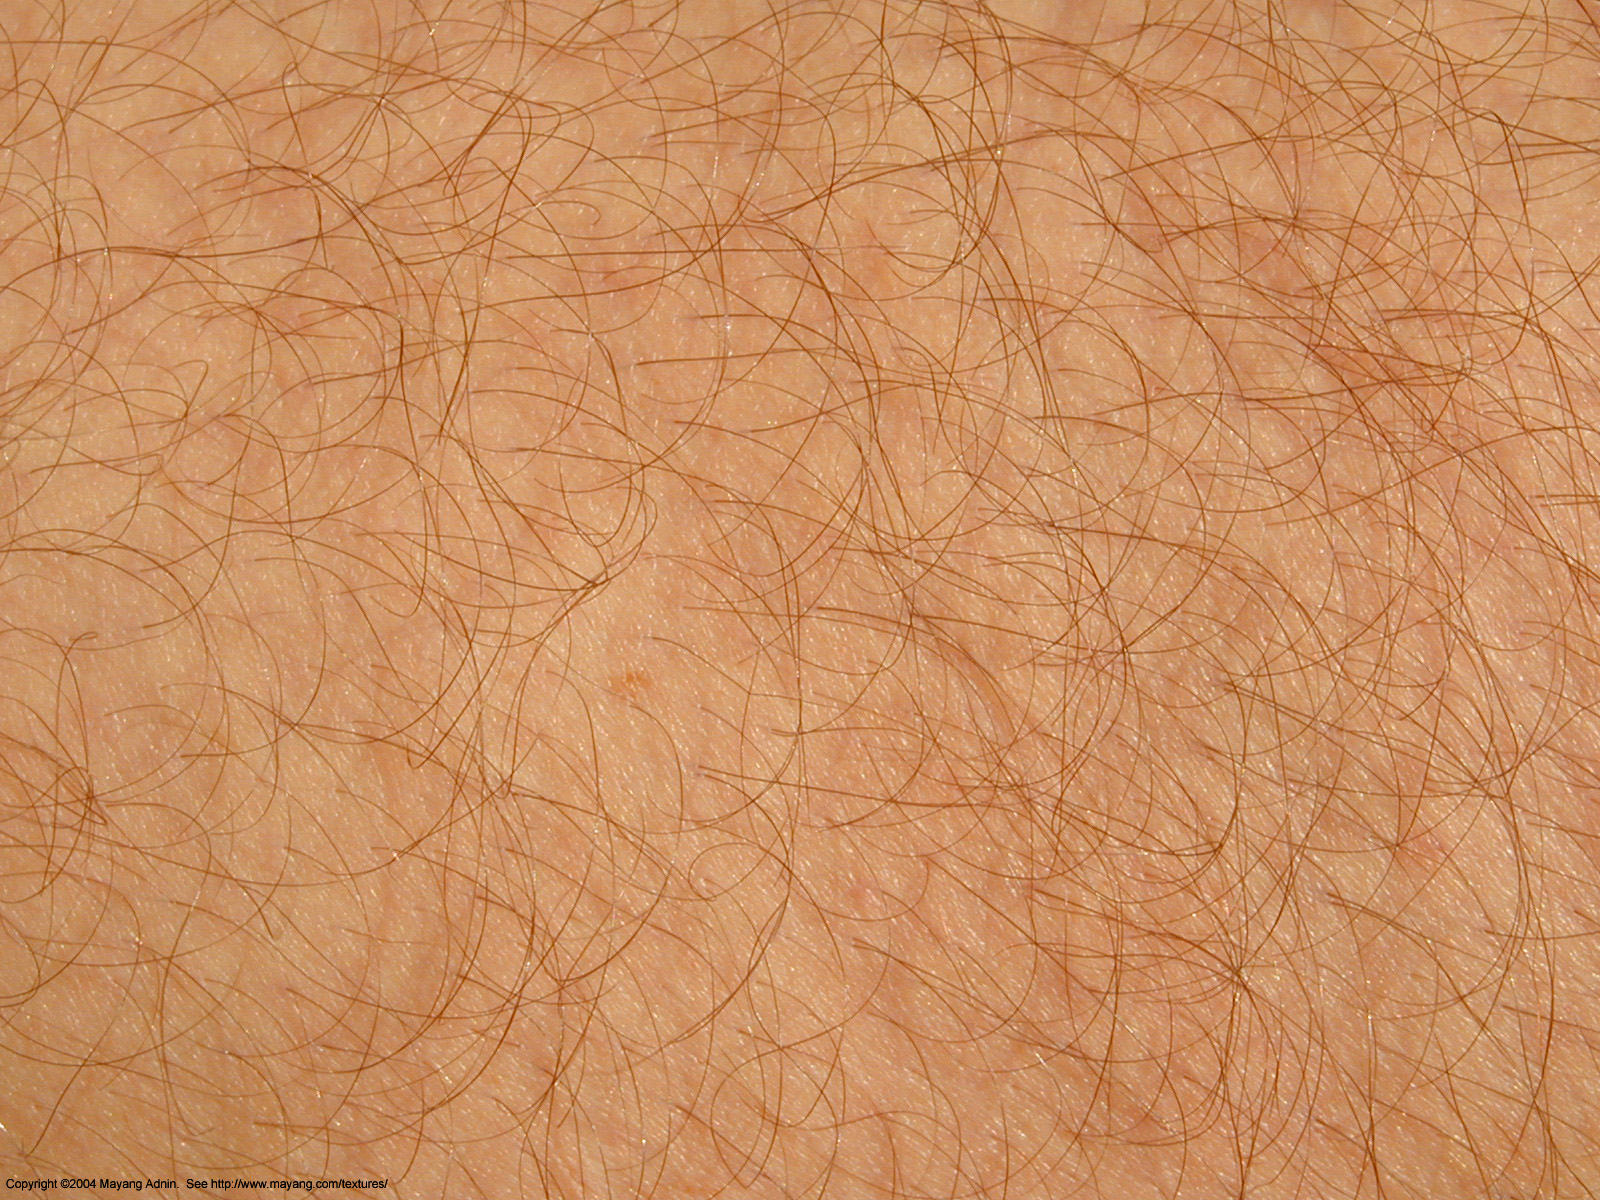 Scientists Identify New Method For Hair Growth The